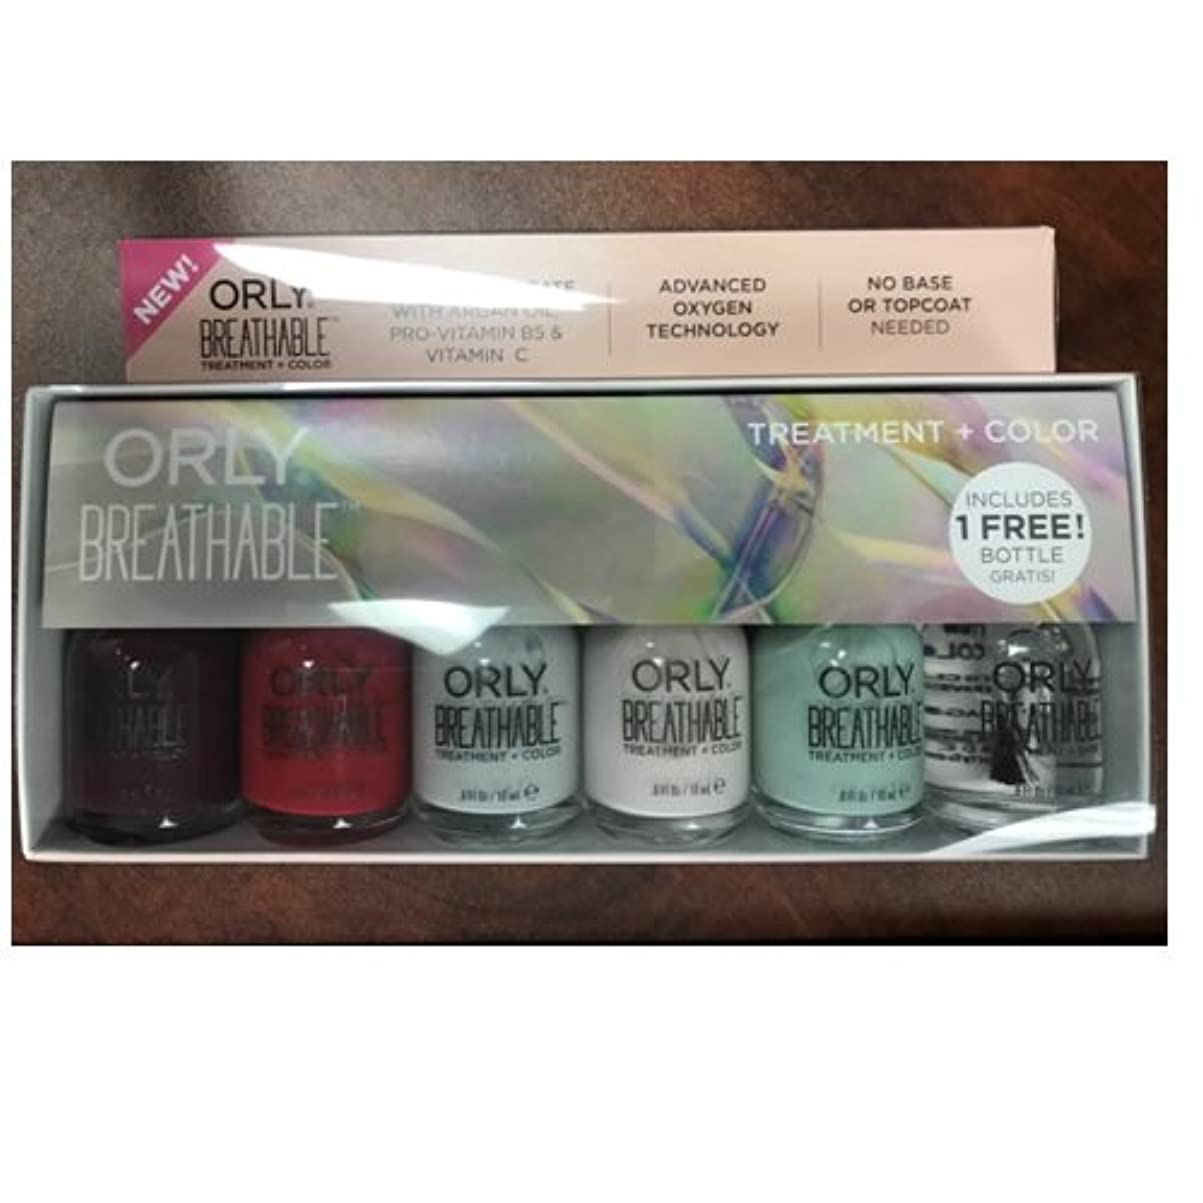 シリンダー原稿痛いOrly Breathable Nail Lacquer - Treatment + Color - 6 Piece Kit - 18ml / 0.6oz Each